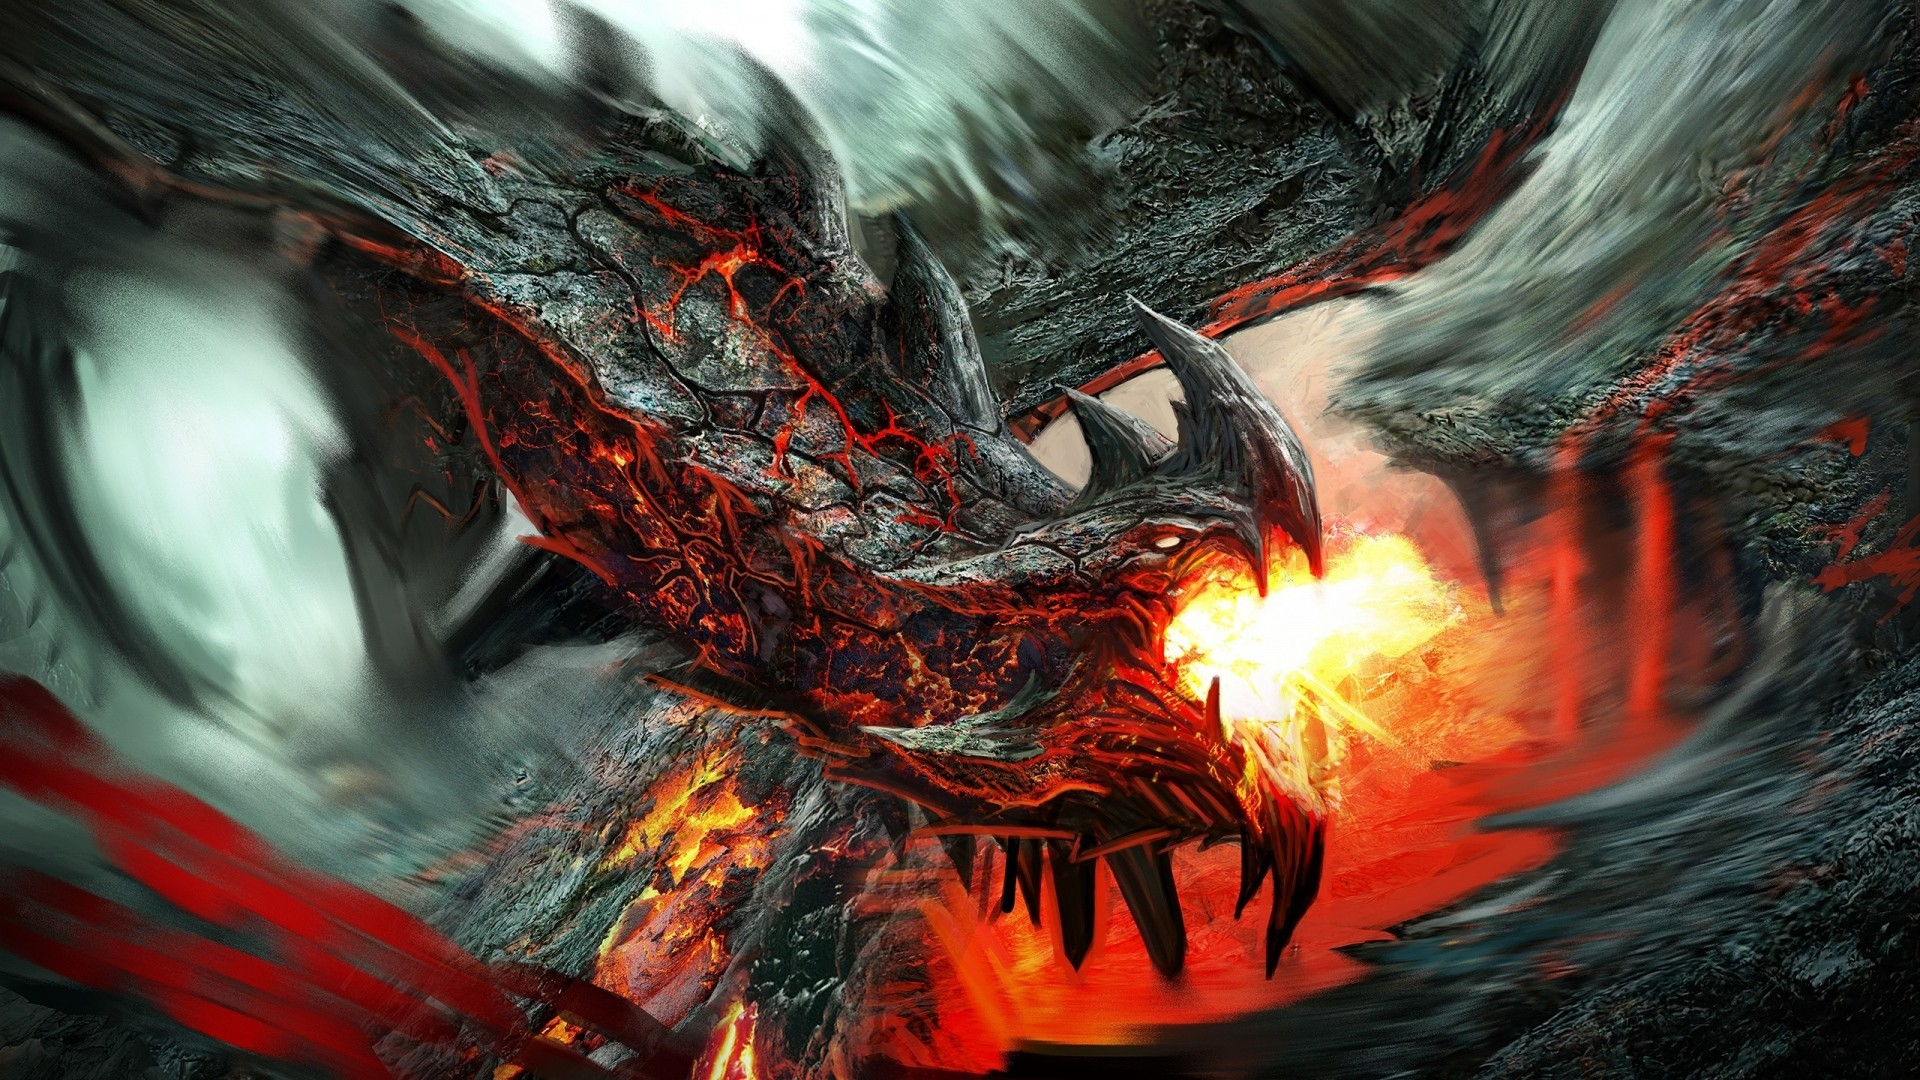 Hd dragon wallpaper wallpapertag - Dragon backgrounds 1920x1080 ...